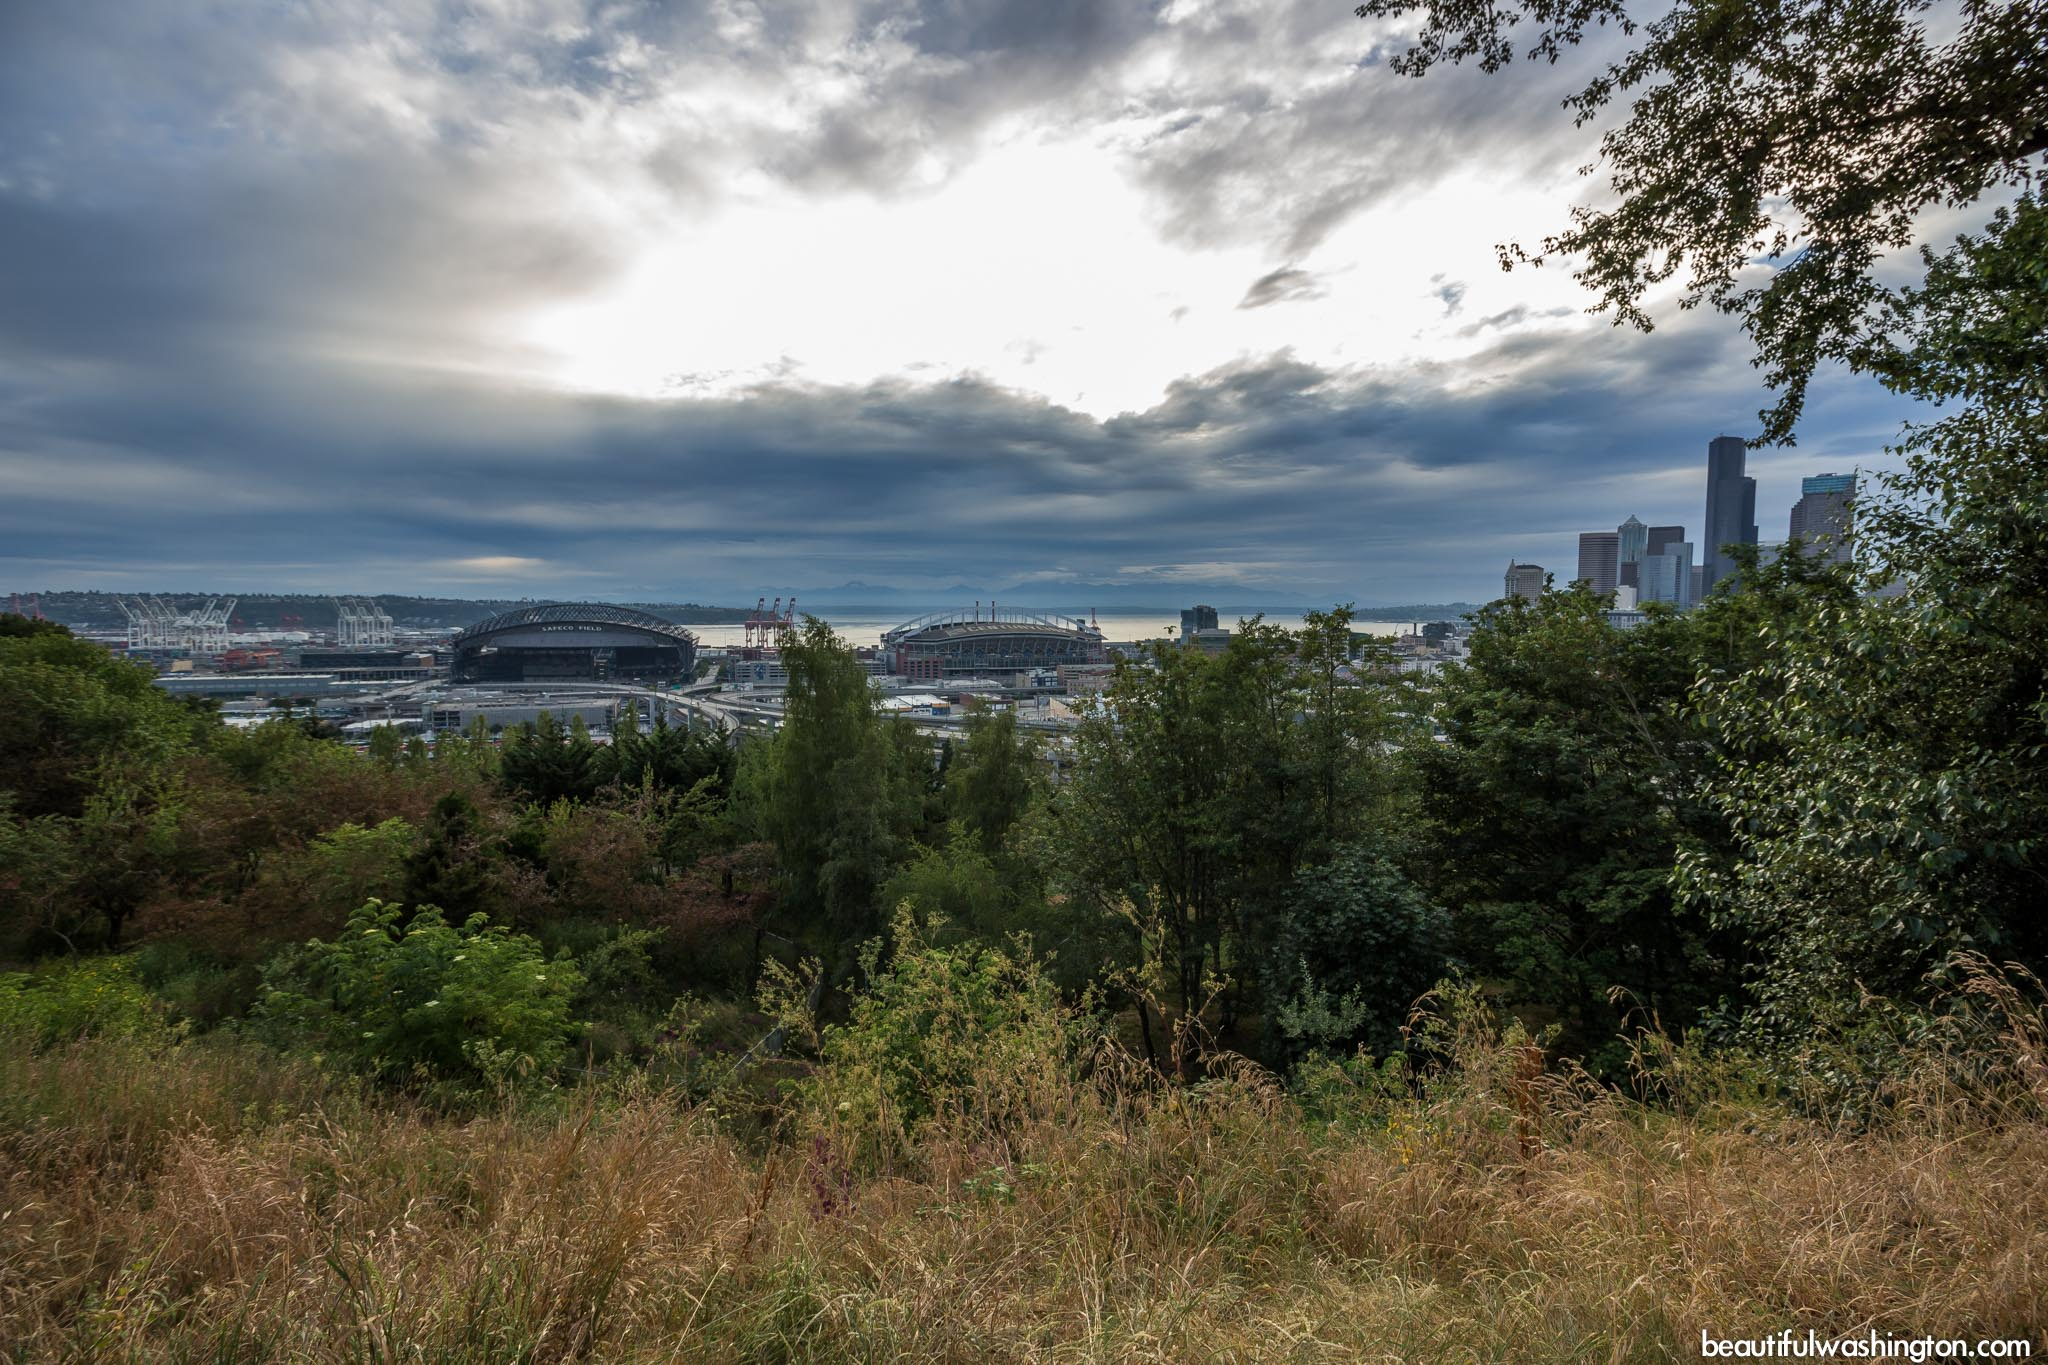 Photo from King County, Seattle, Dr. Jose Rizal Park